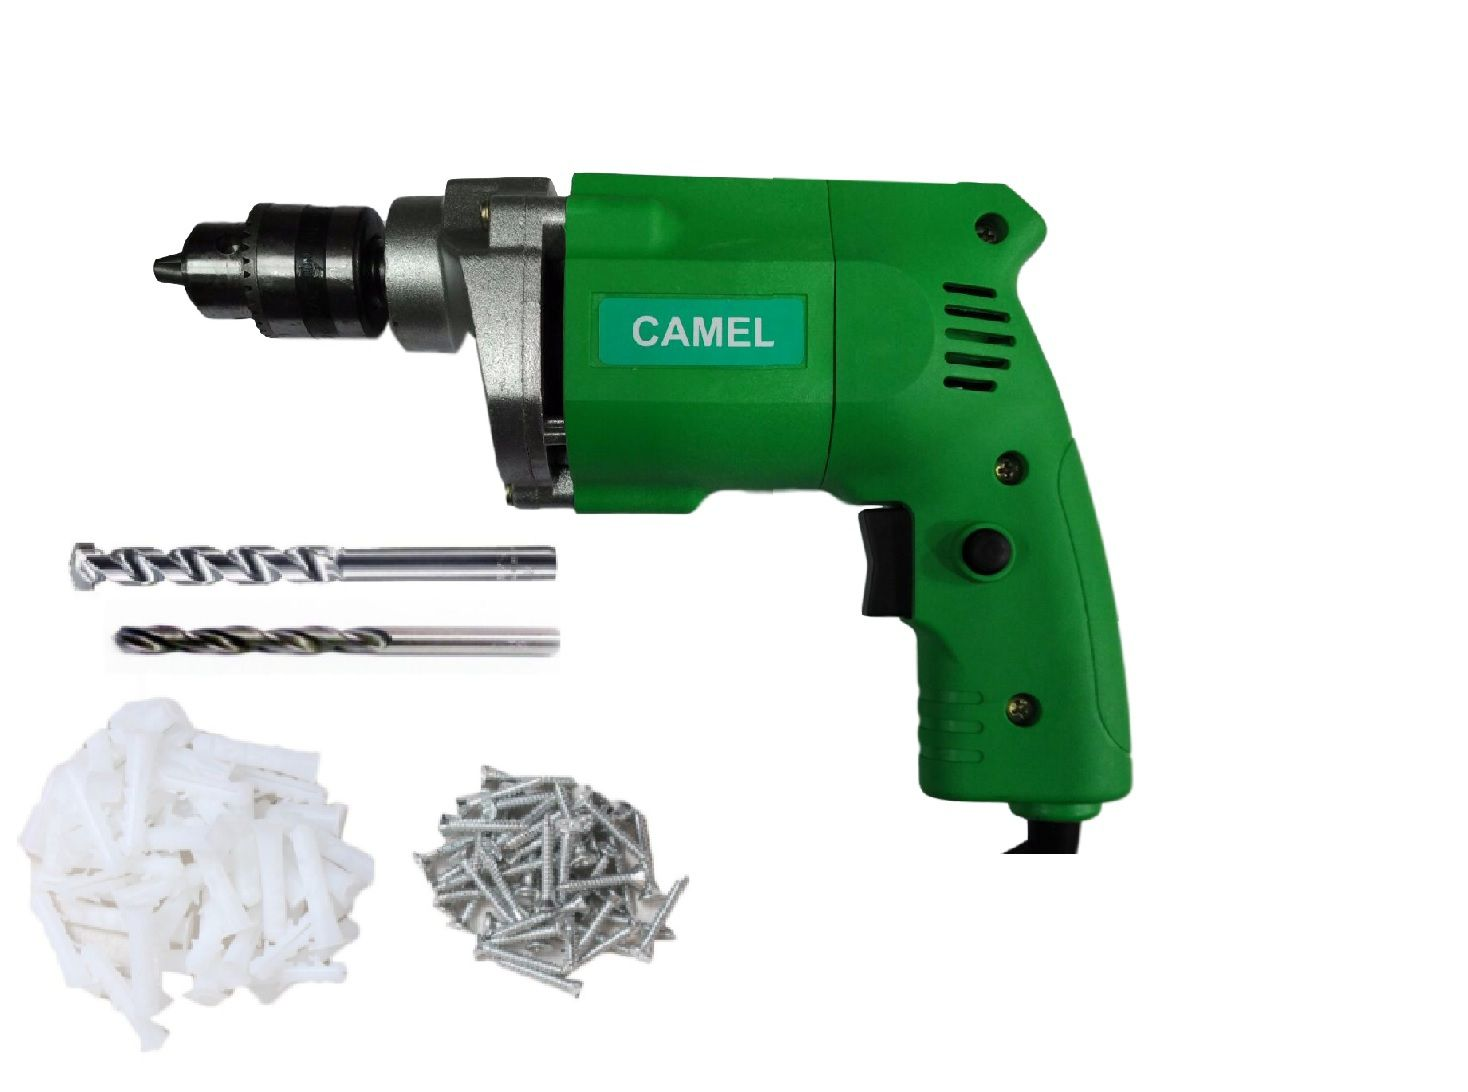 Camel 350W 10mm Corded Drill Machine with 2 High Quality Drill Bits + Fasteners (Pench & Gitti)